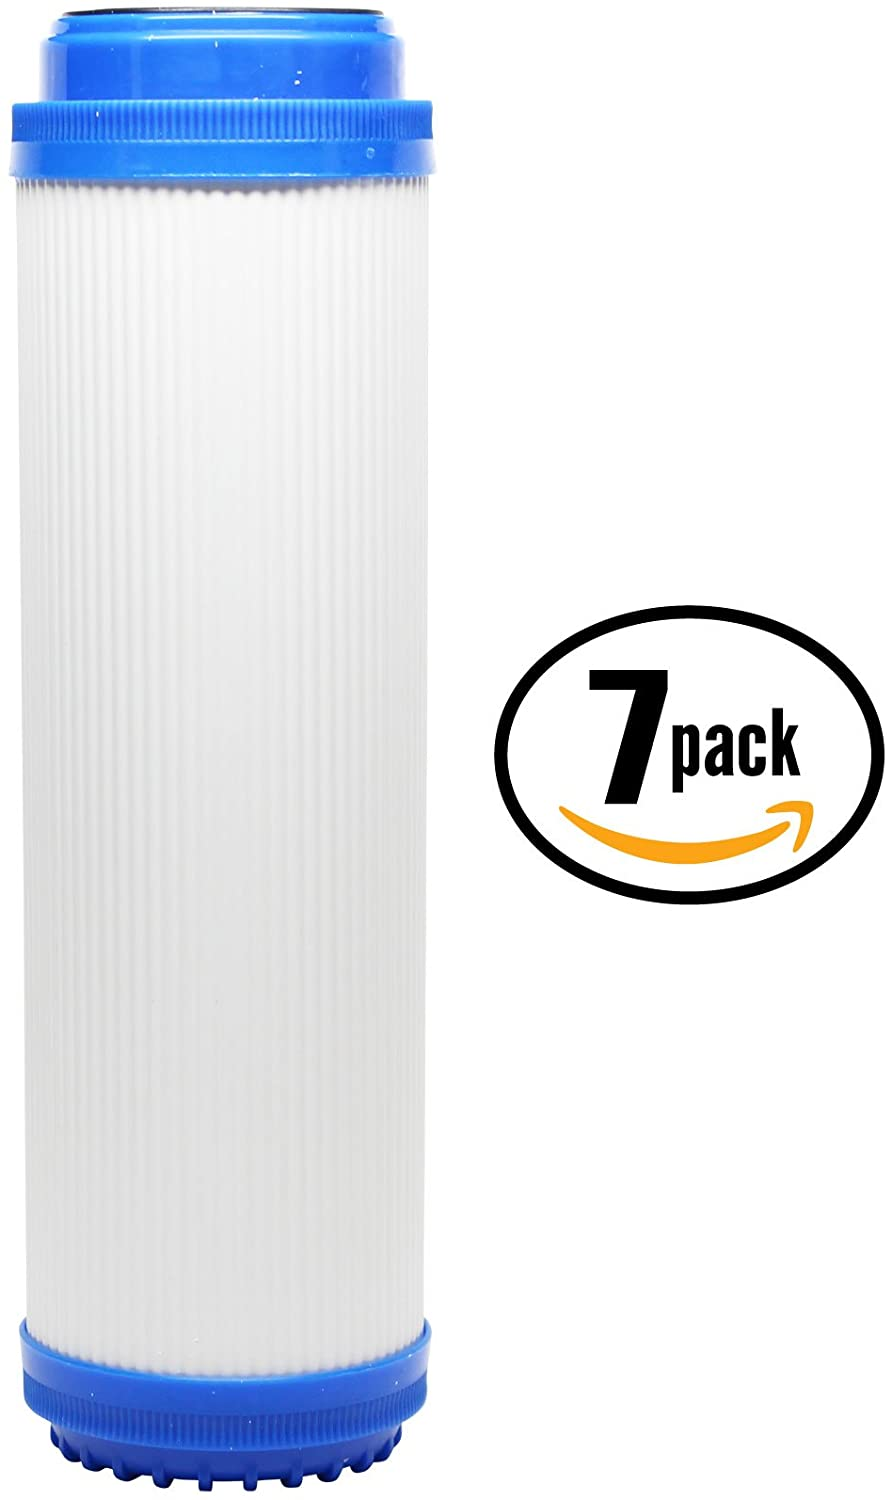 7-Pack Replacement for Hydronix HF3-10BLBK38 Granular Activated Carbon Filter - Universal 10-inch Cartridge Compatible with Hydronix HF3-10BLBK38 10